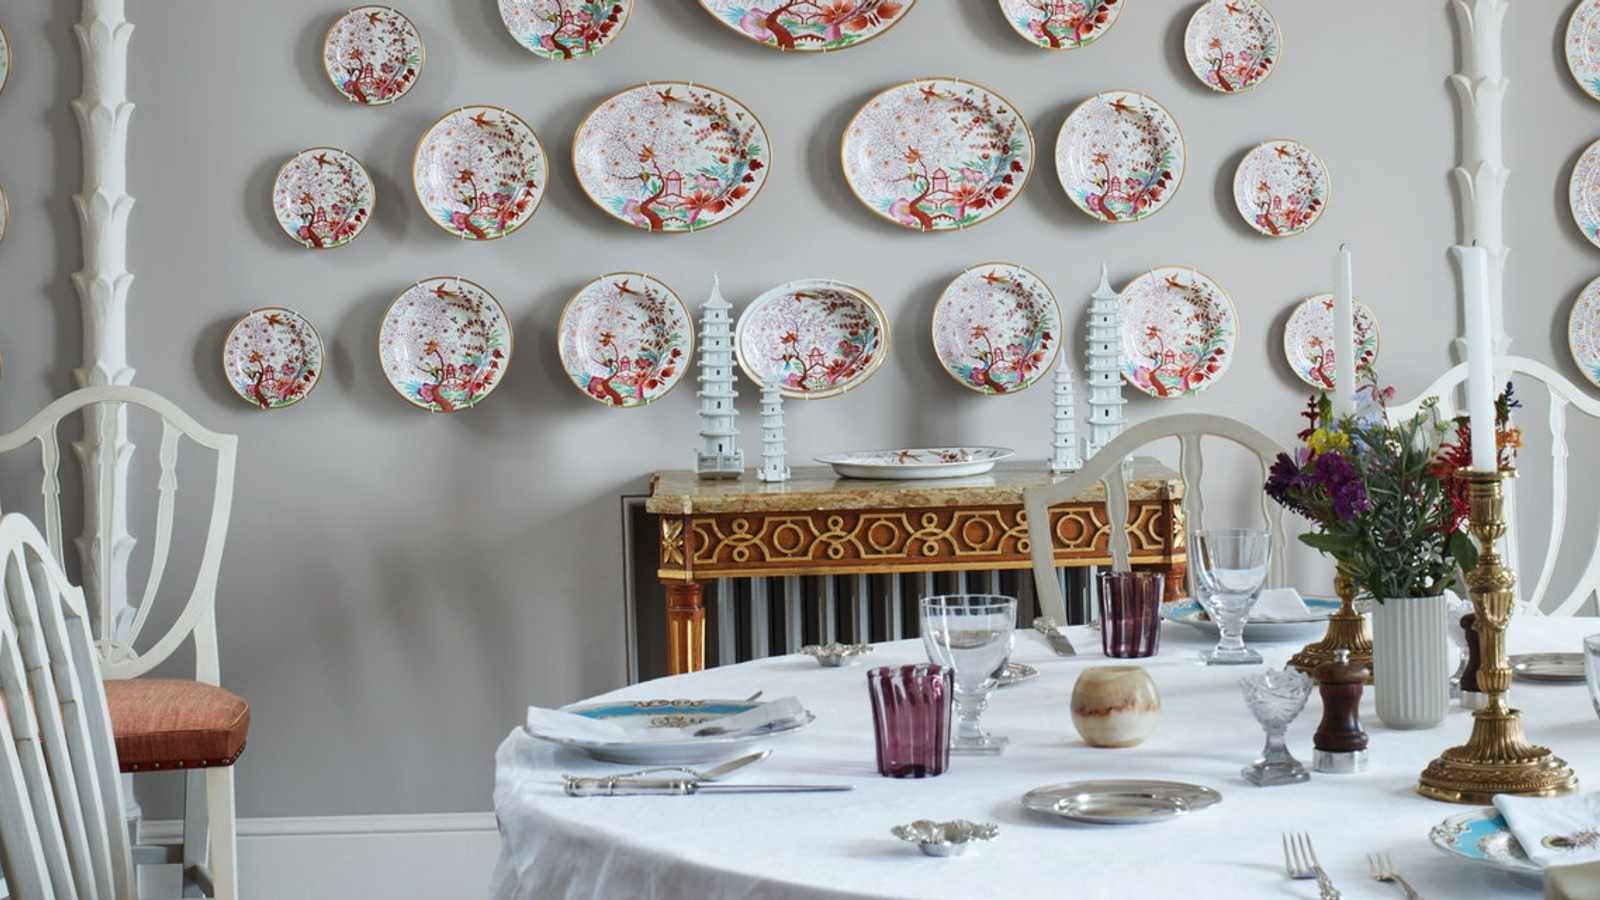 Stylish People Are Putting Plates on Walls—and We're Here for It